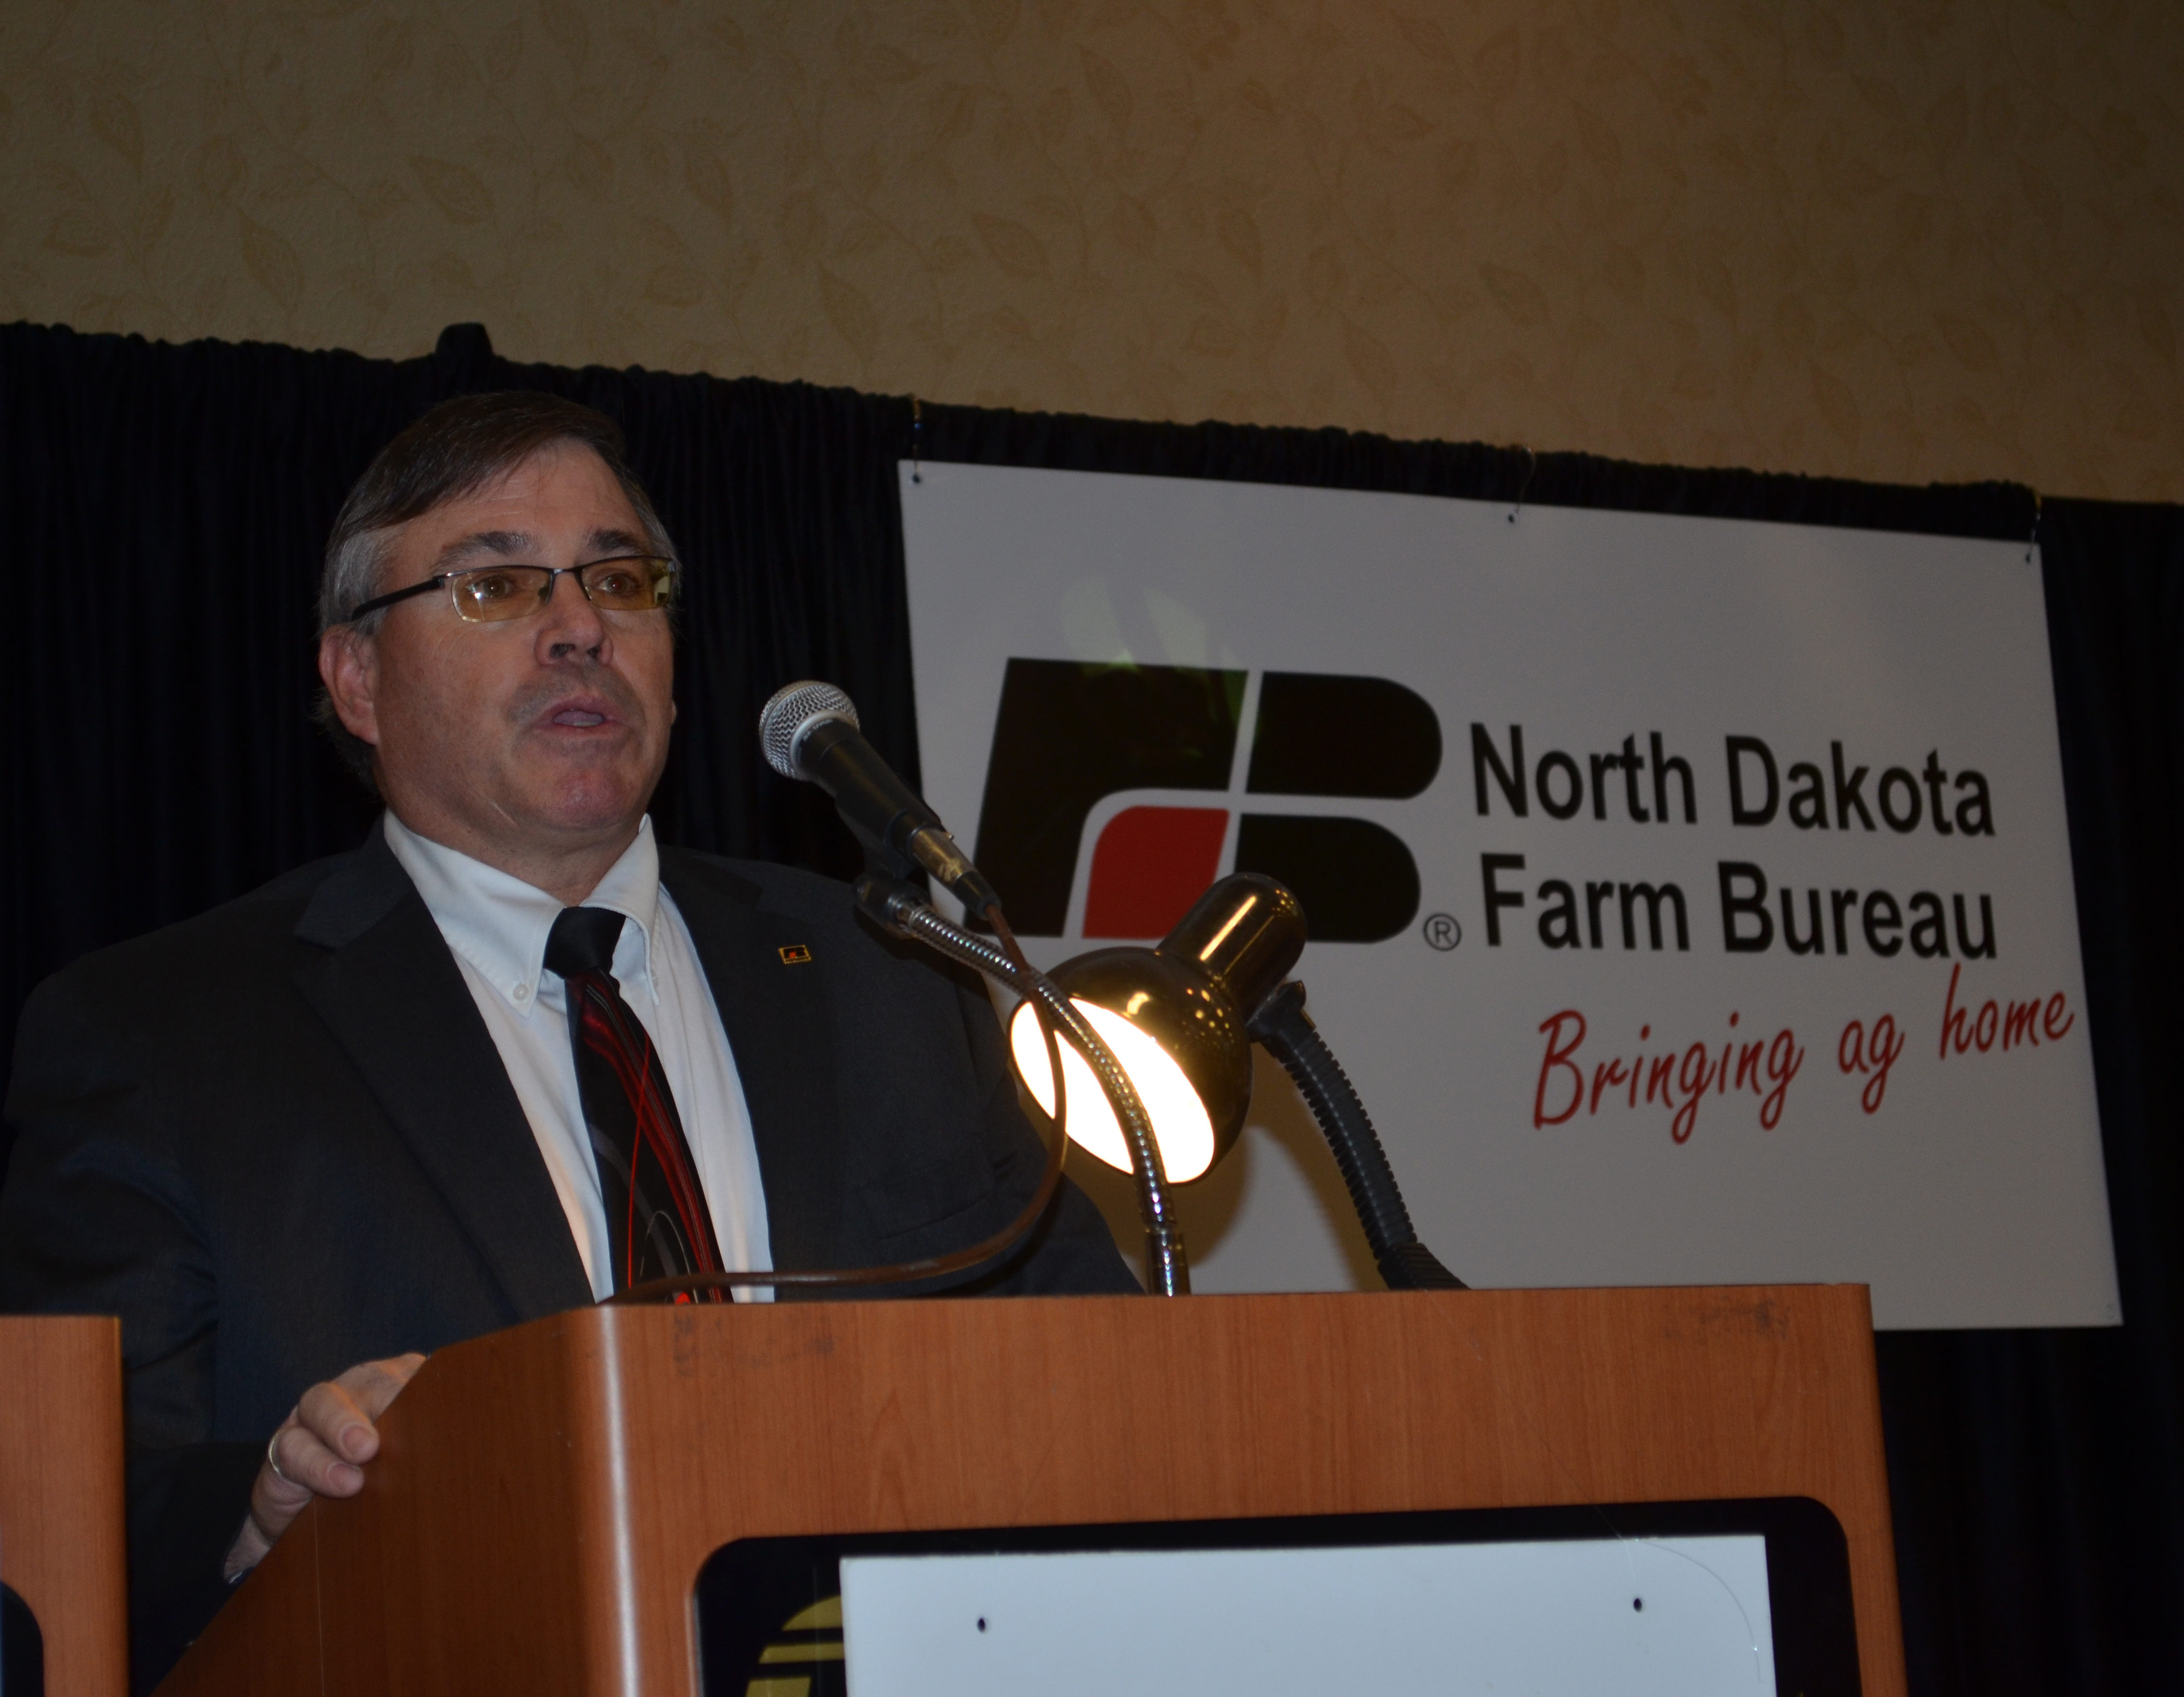 NDFB President encourages action for ag growth